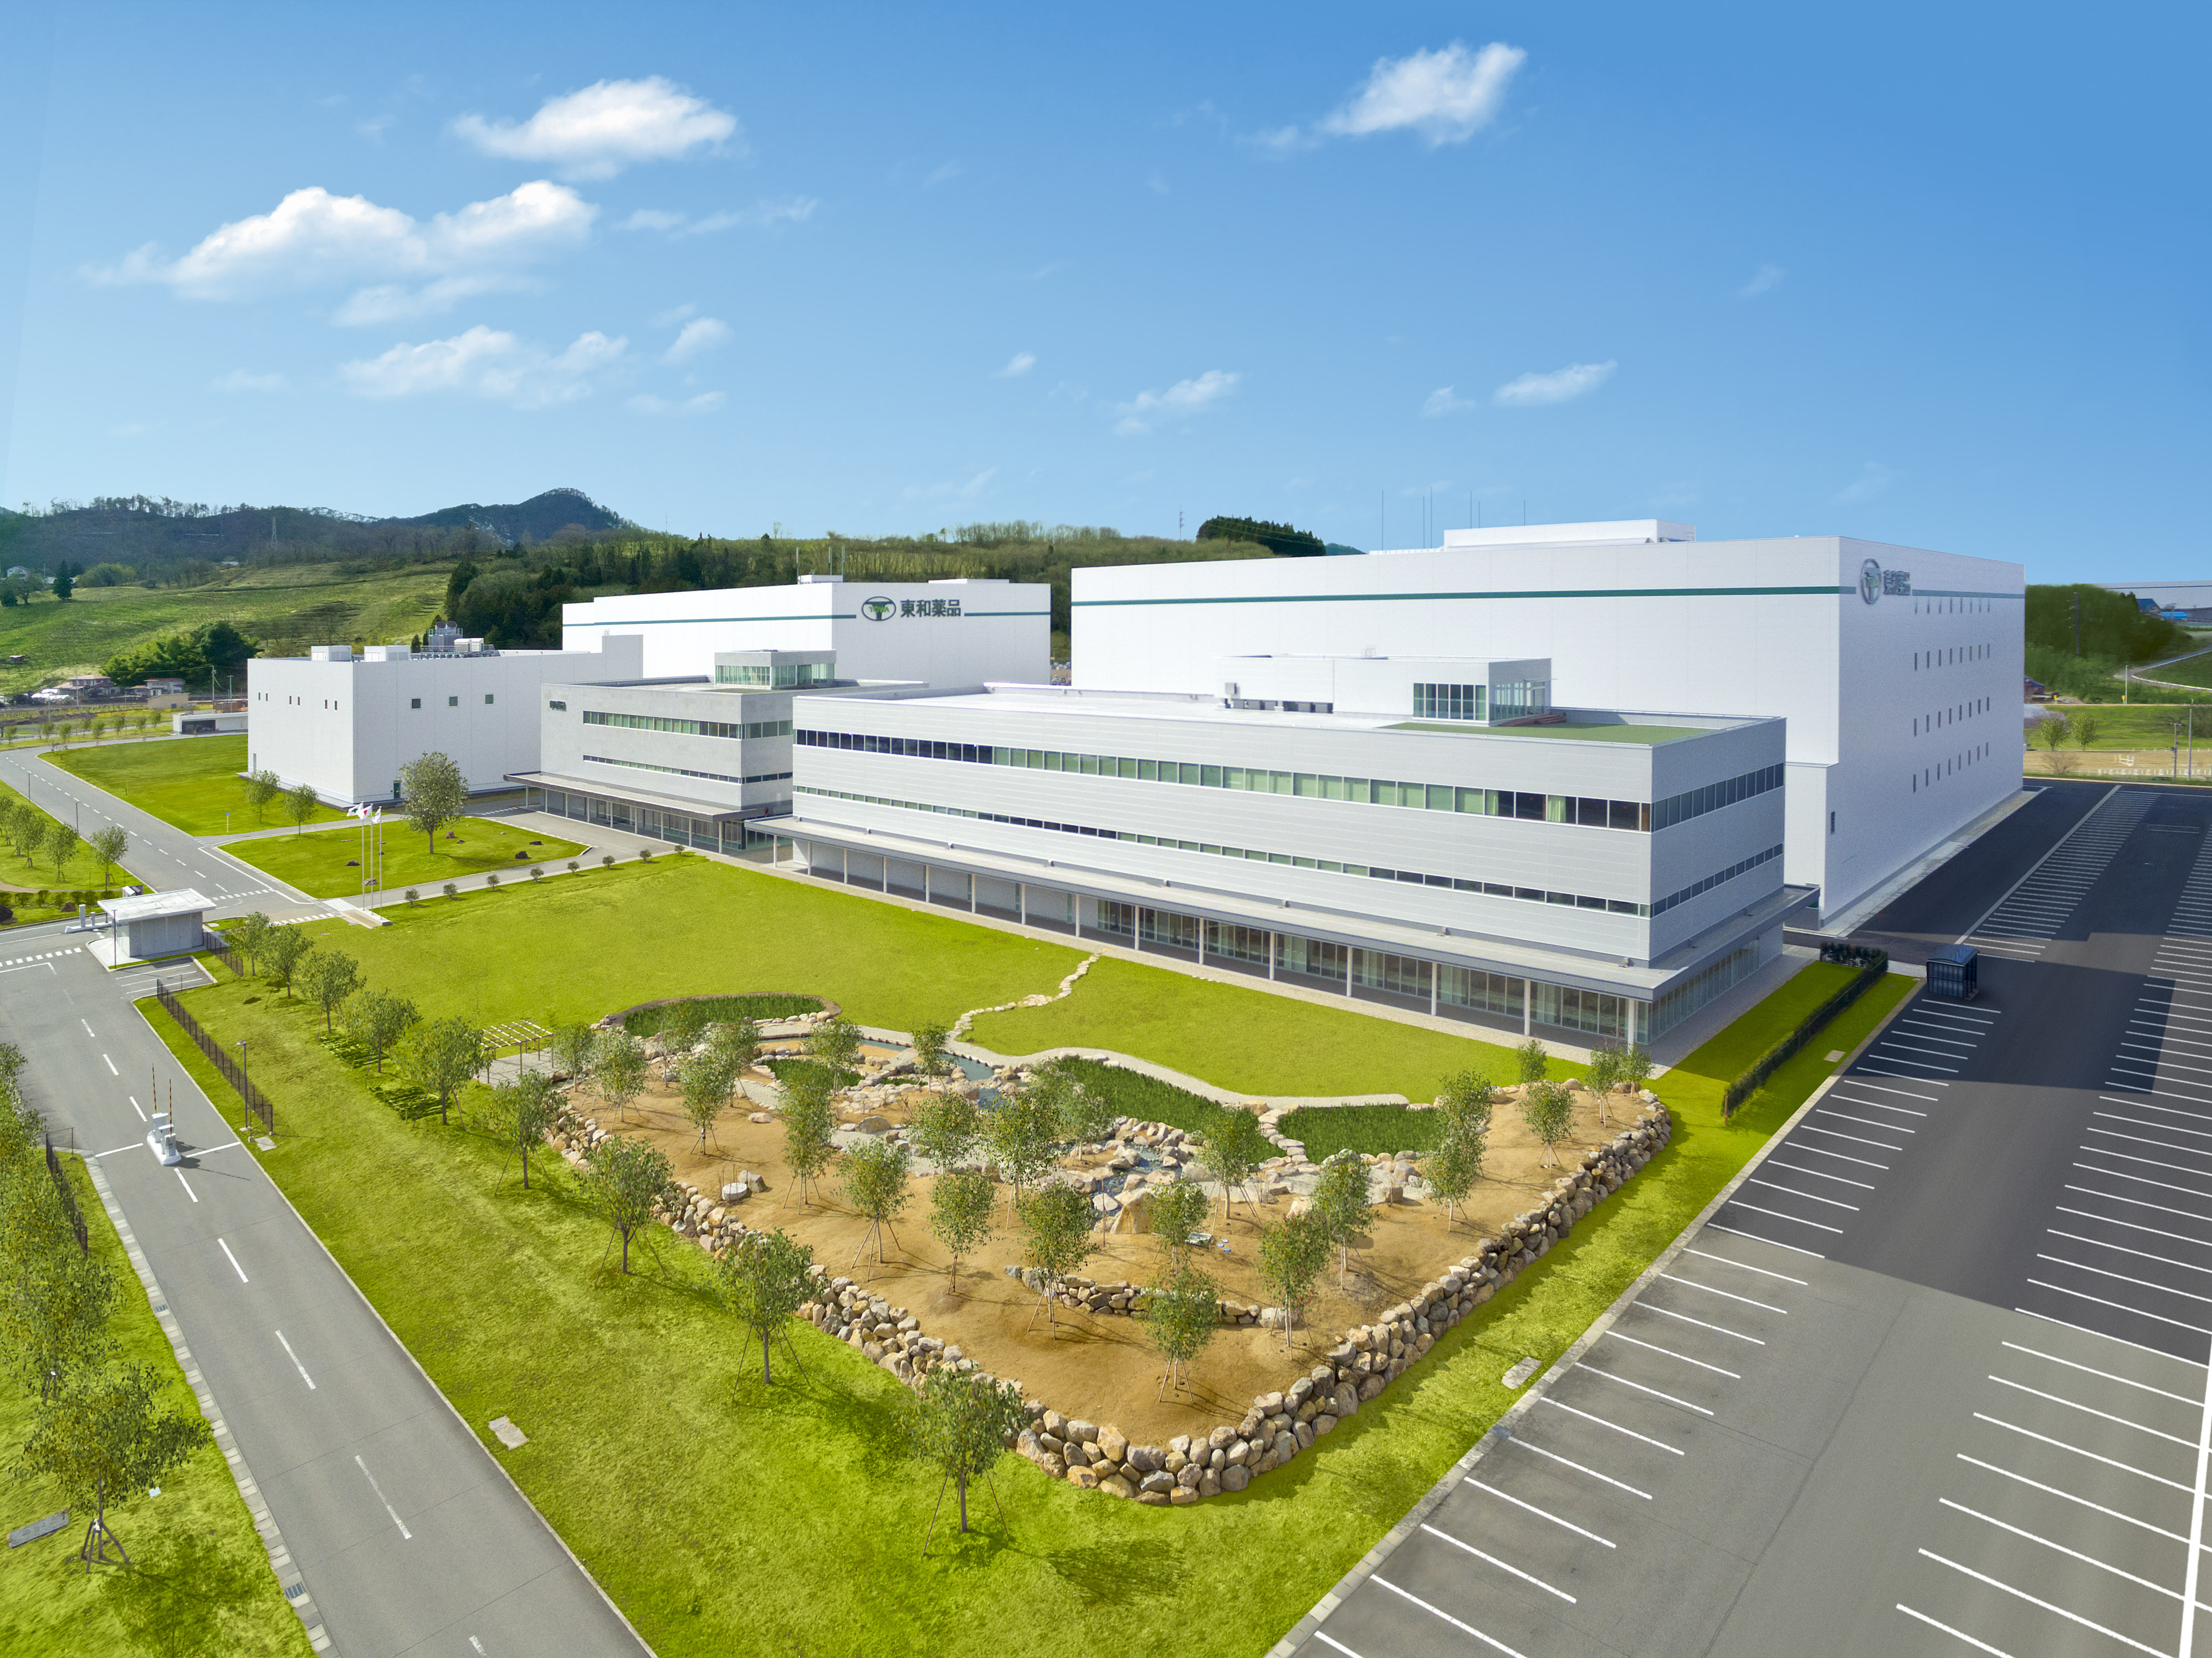 The earthquake-resistant Yamagata Plant is where Towa's injections are manufactured. Photo: Towa Pharmaceutical